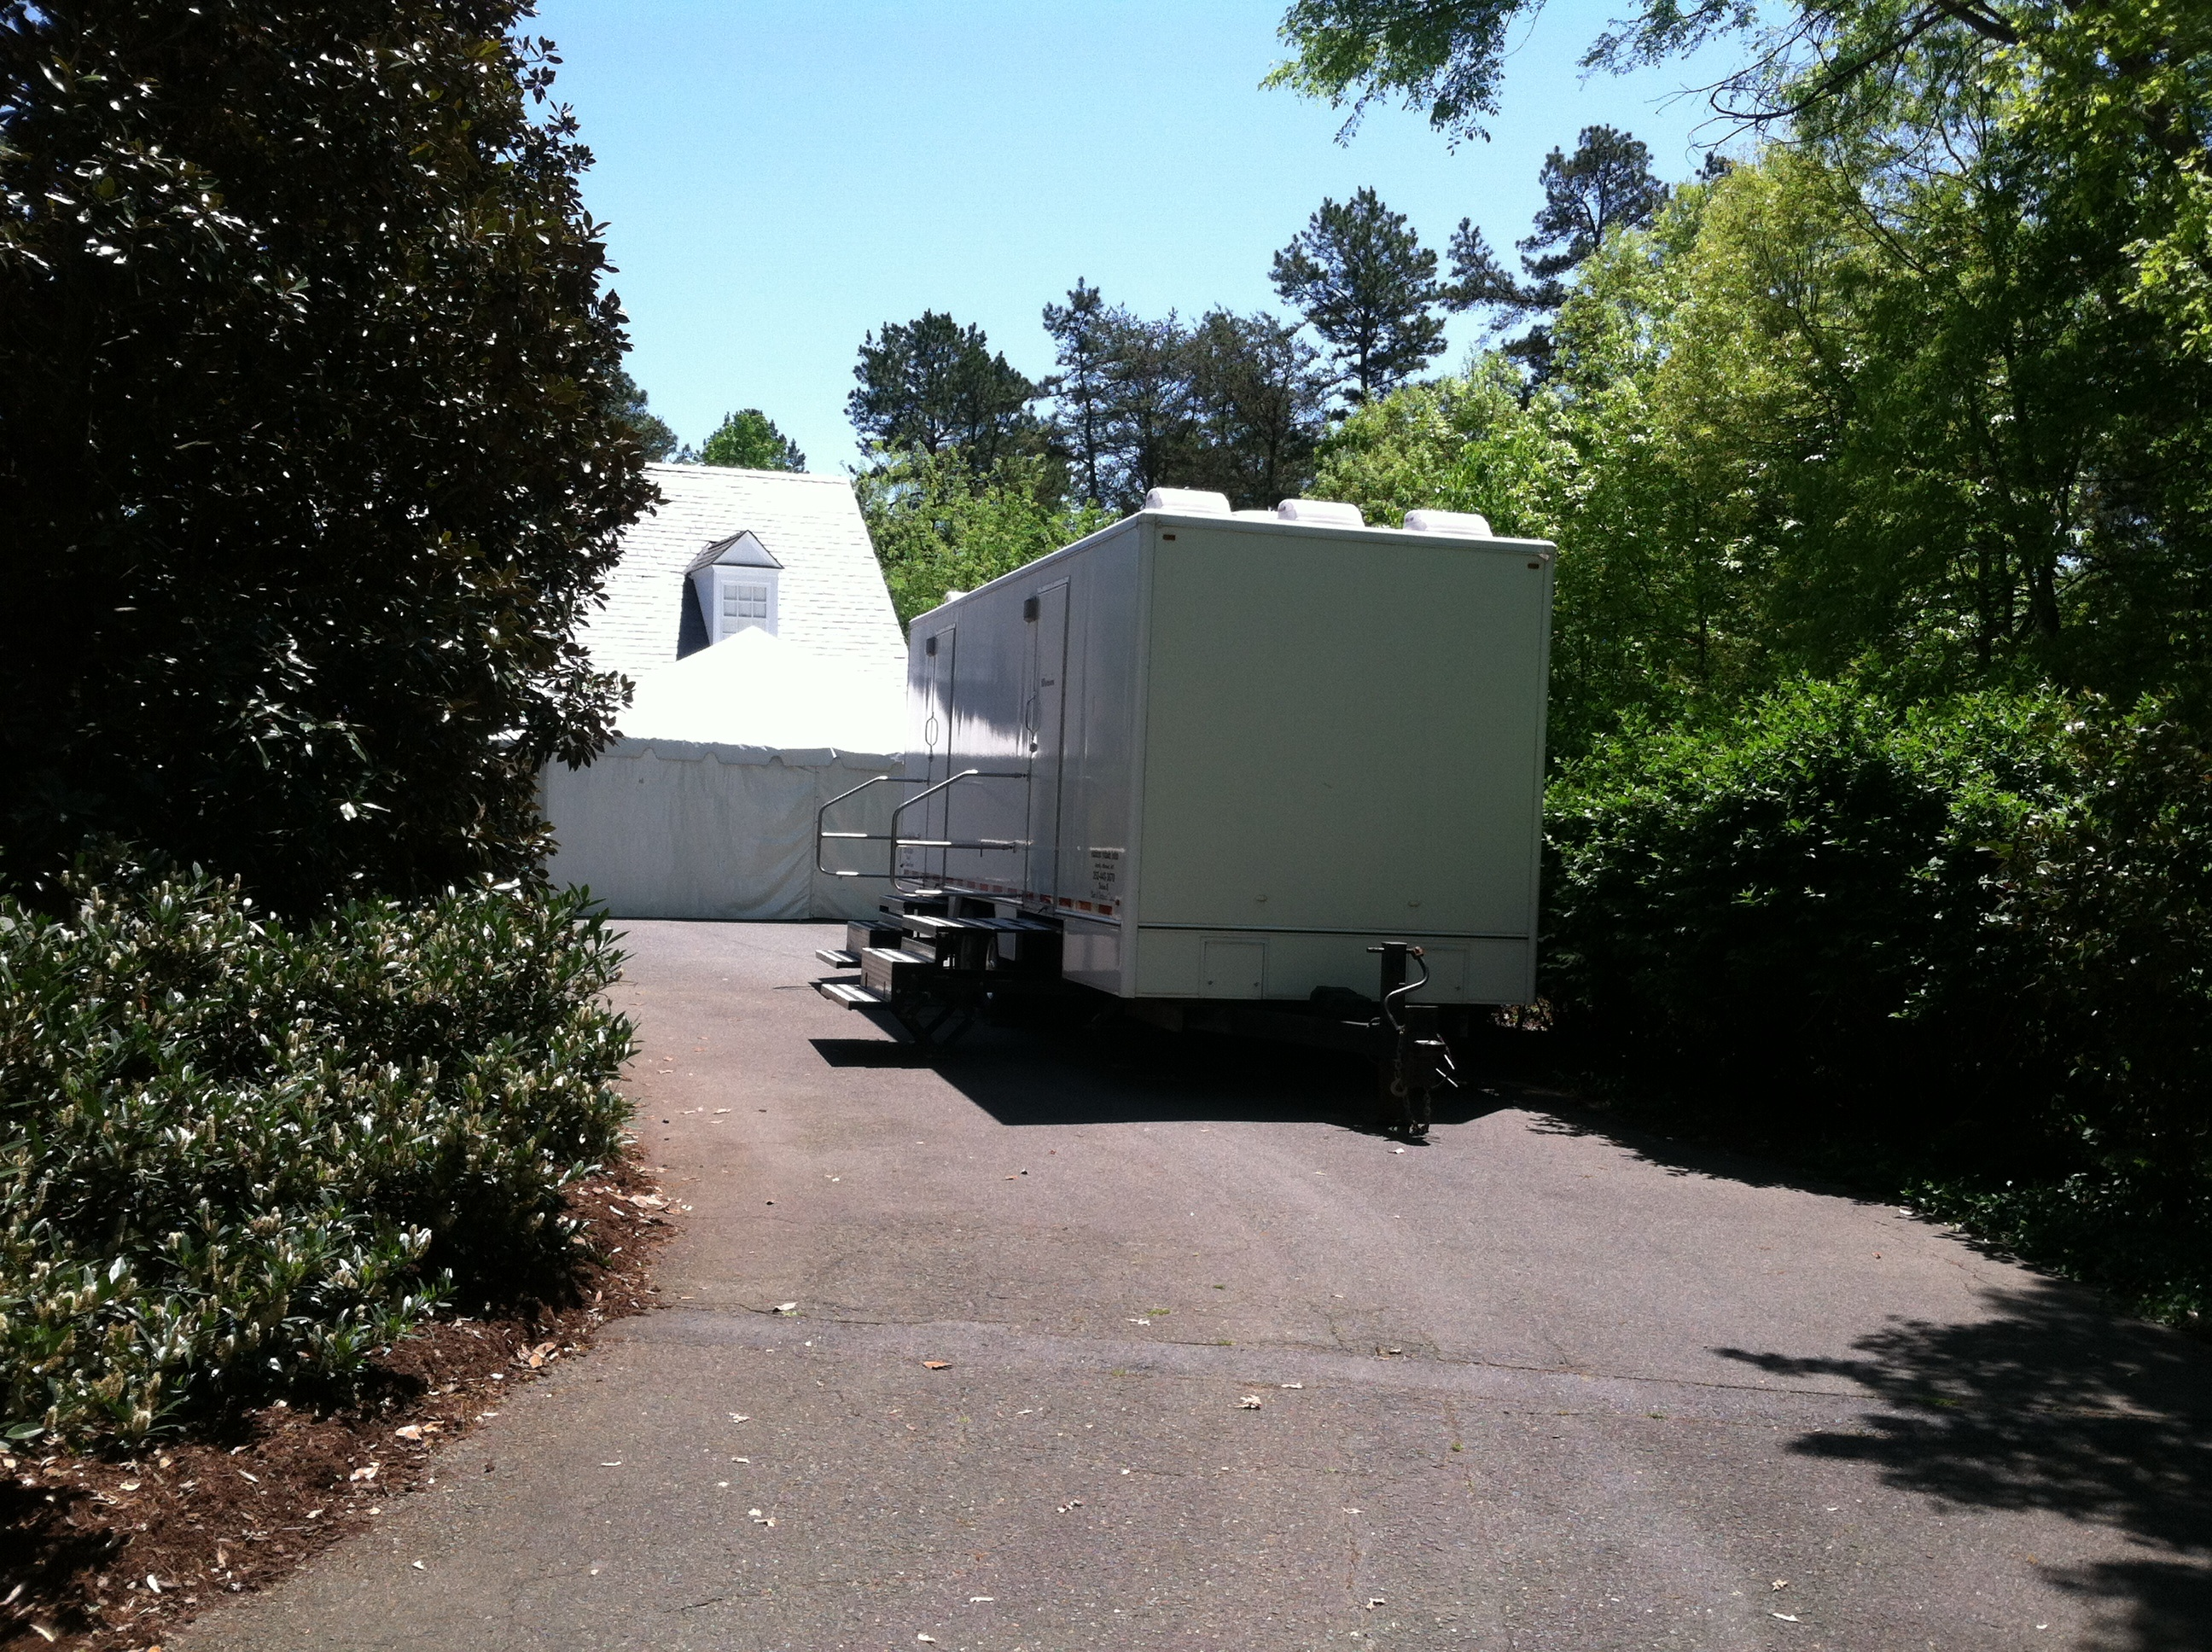 party rental trailer parked in driveway